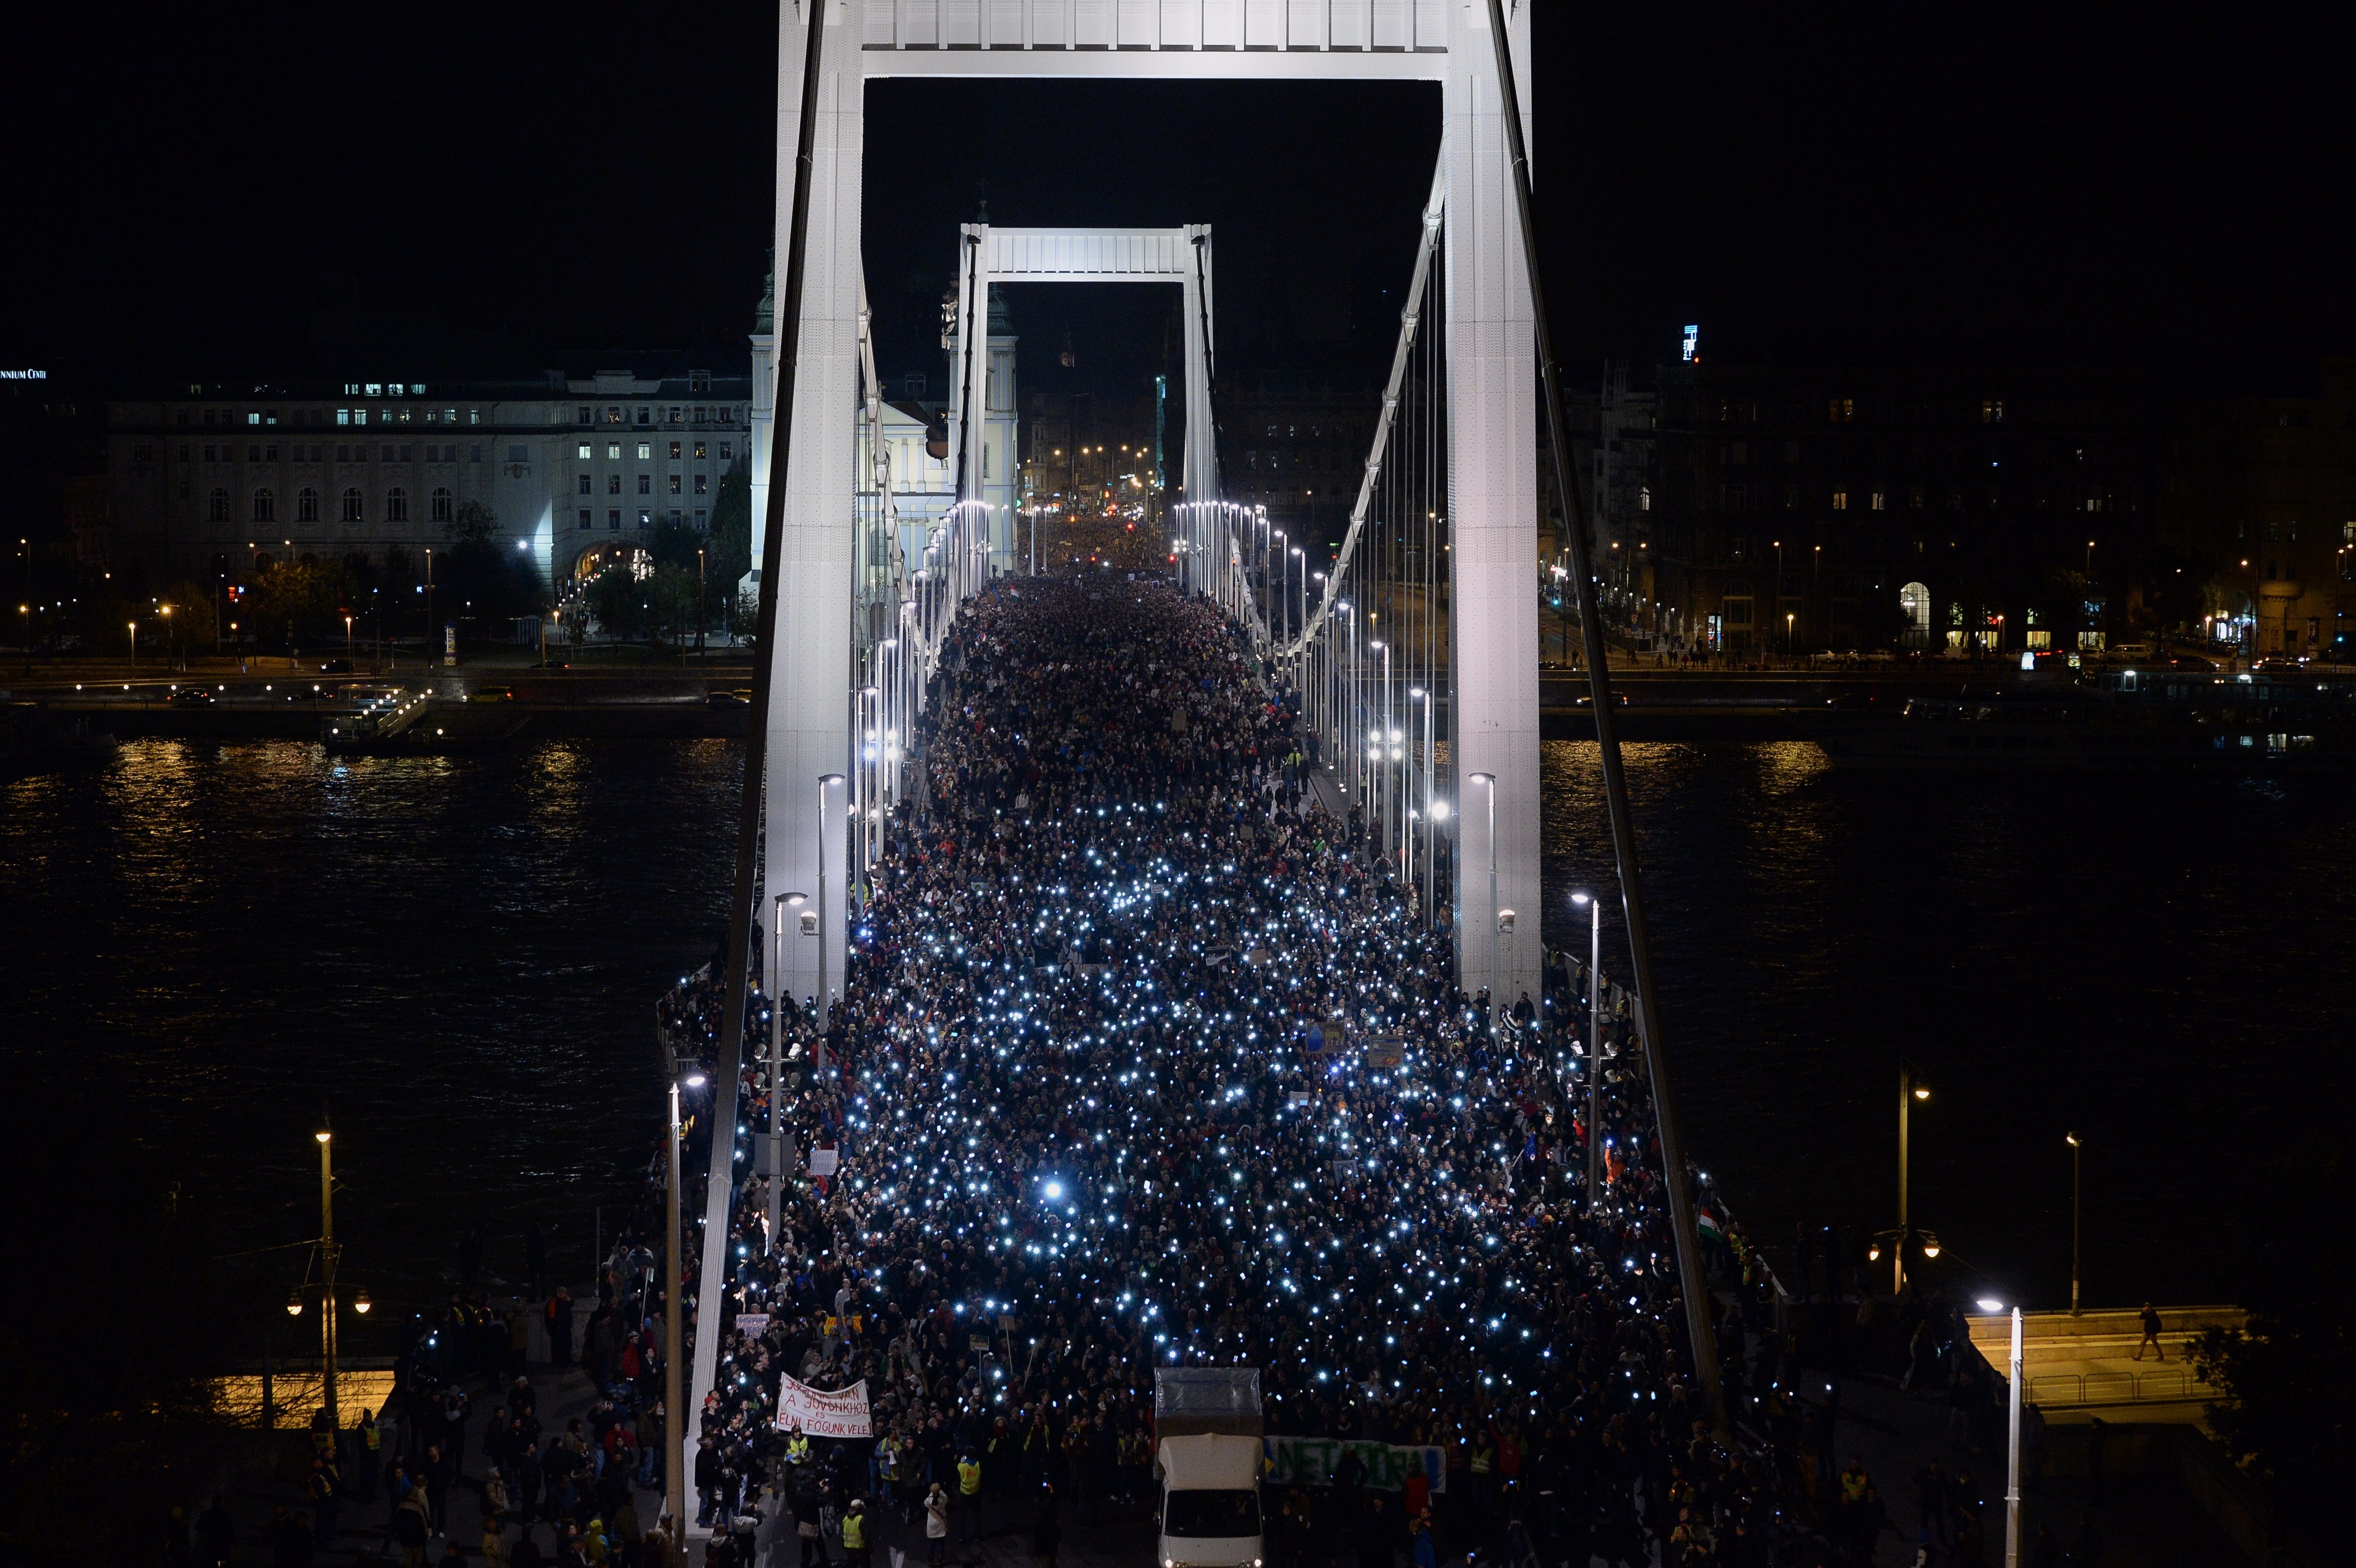 After Mass Protests, Hungary Gives Up On Internet Tax